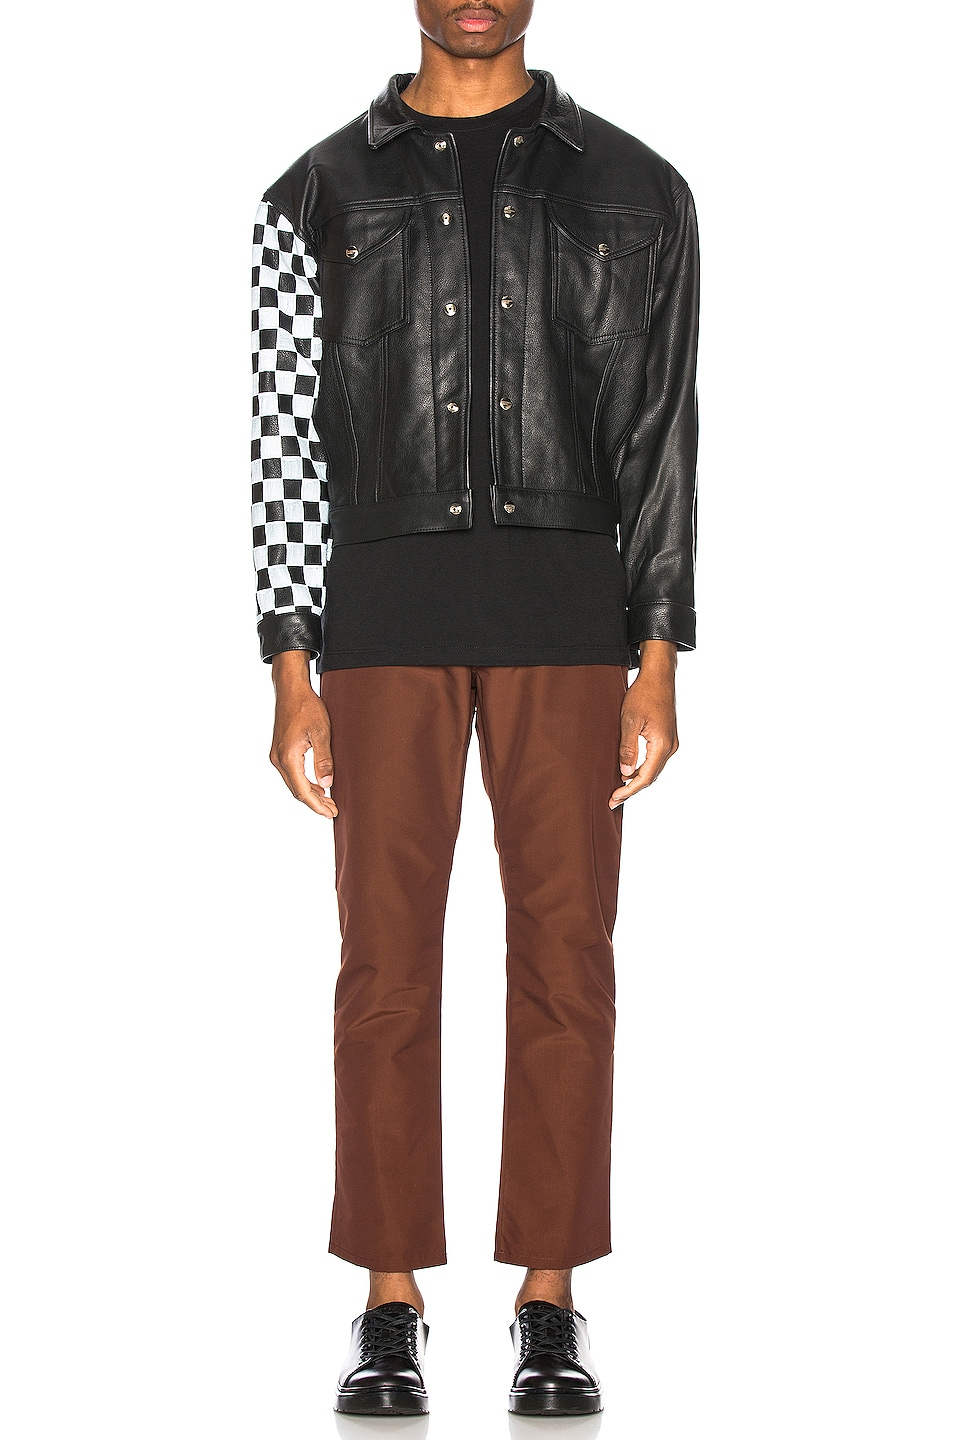 Image 5 of Enfants Riches Deprimes Checkered Sleeve Leather Jacket in Black & White